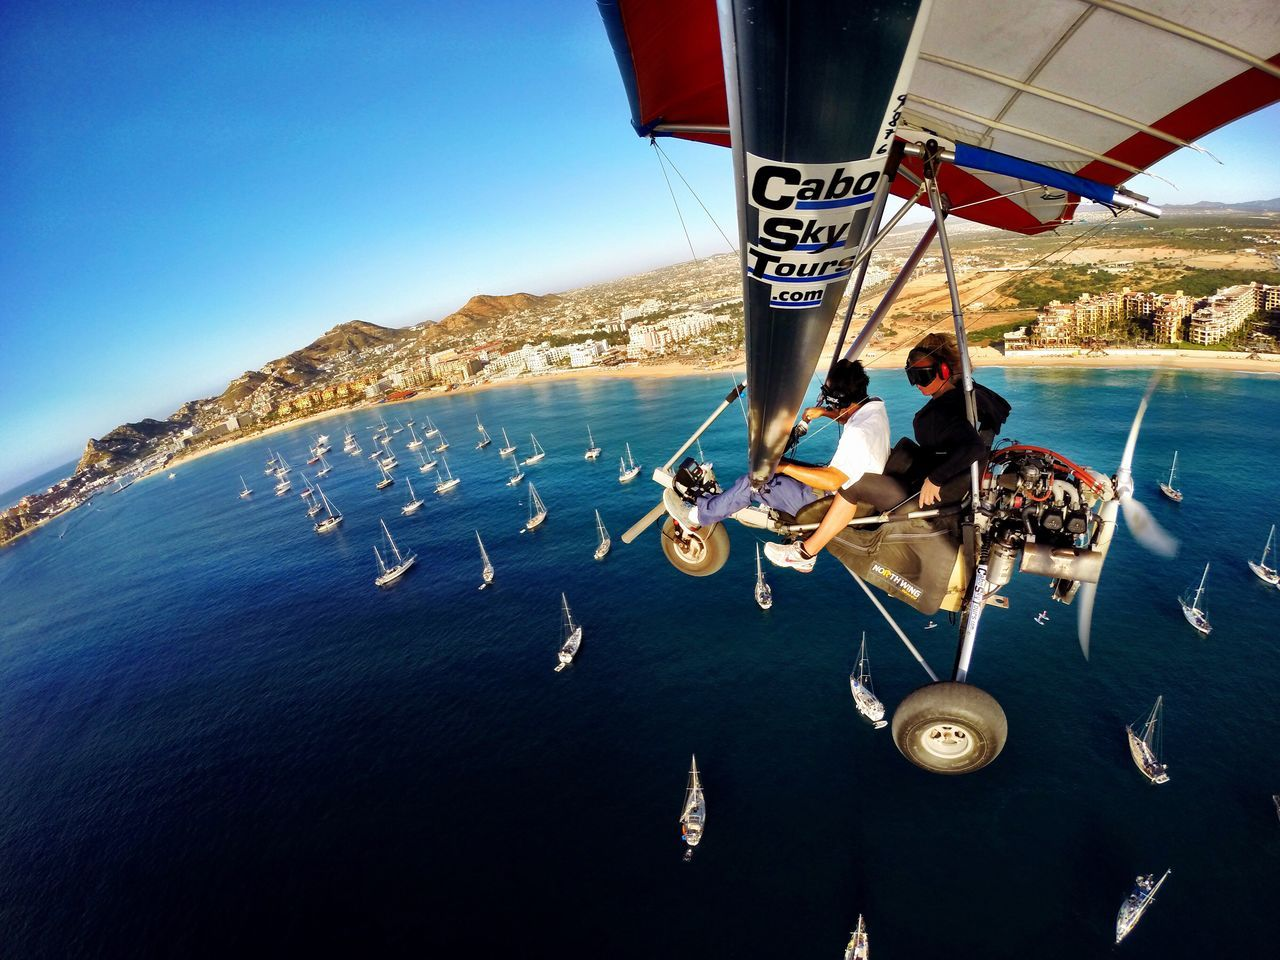 Real People Water Scenics Vacations Friendship Nautical Vessel Togetherness Sky Beauty In Nature Horizon Over Water LosCabos Skydiving Fly Away Adrenaline Junkie Determination Adrenaline Travel Bajacalifornia Mexico Vacations